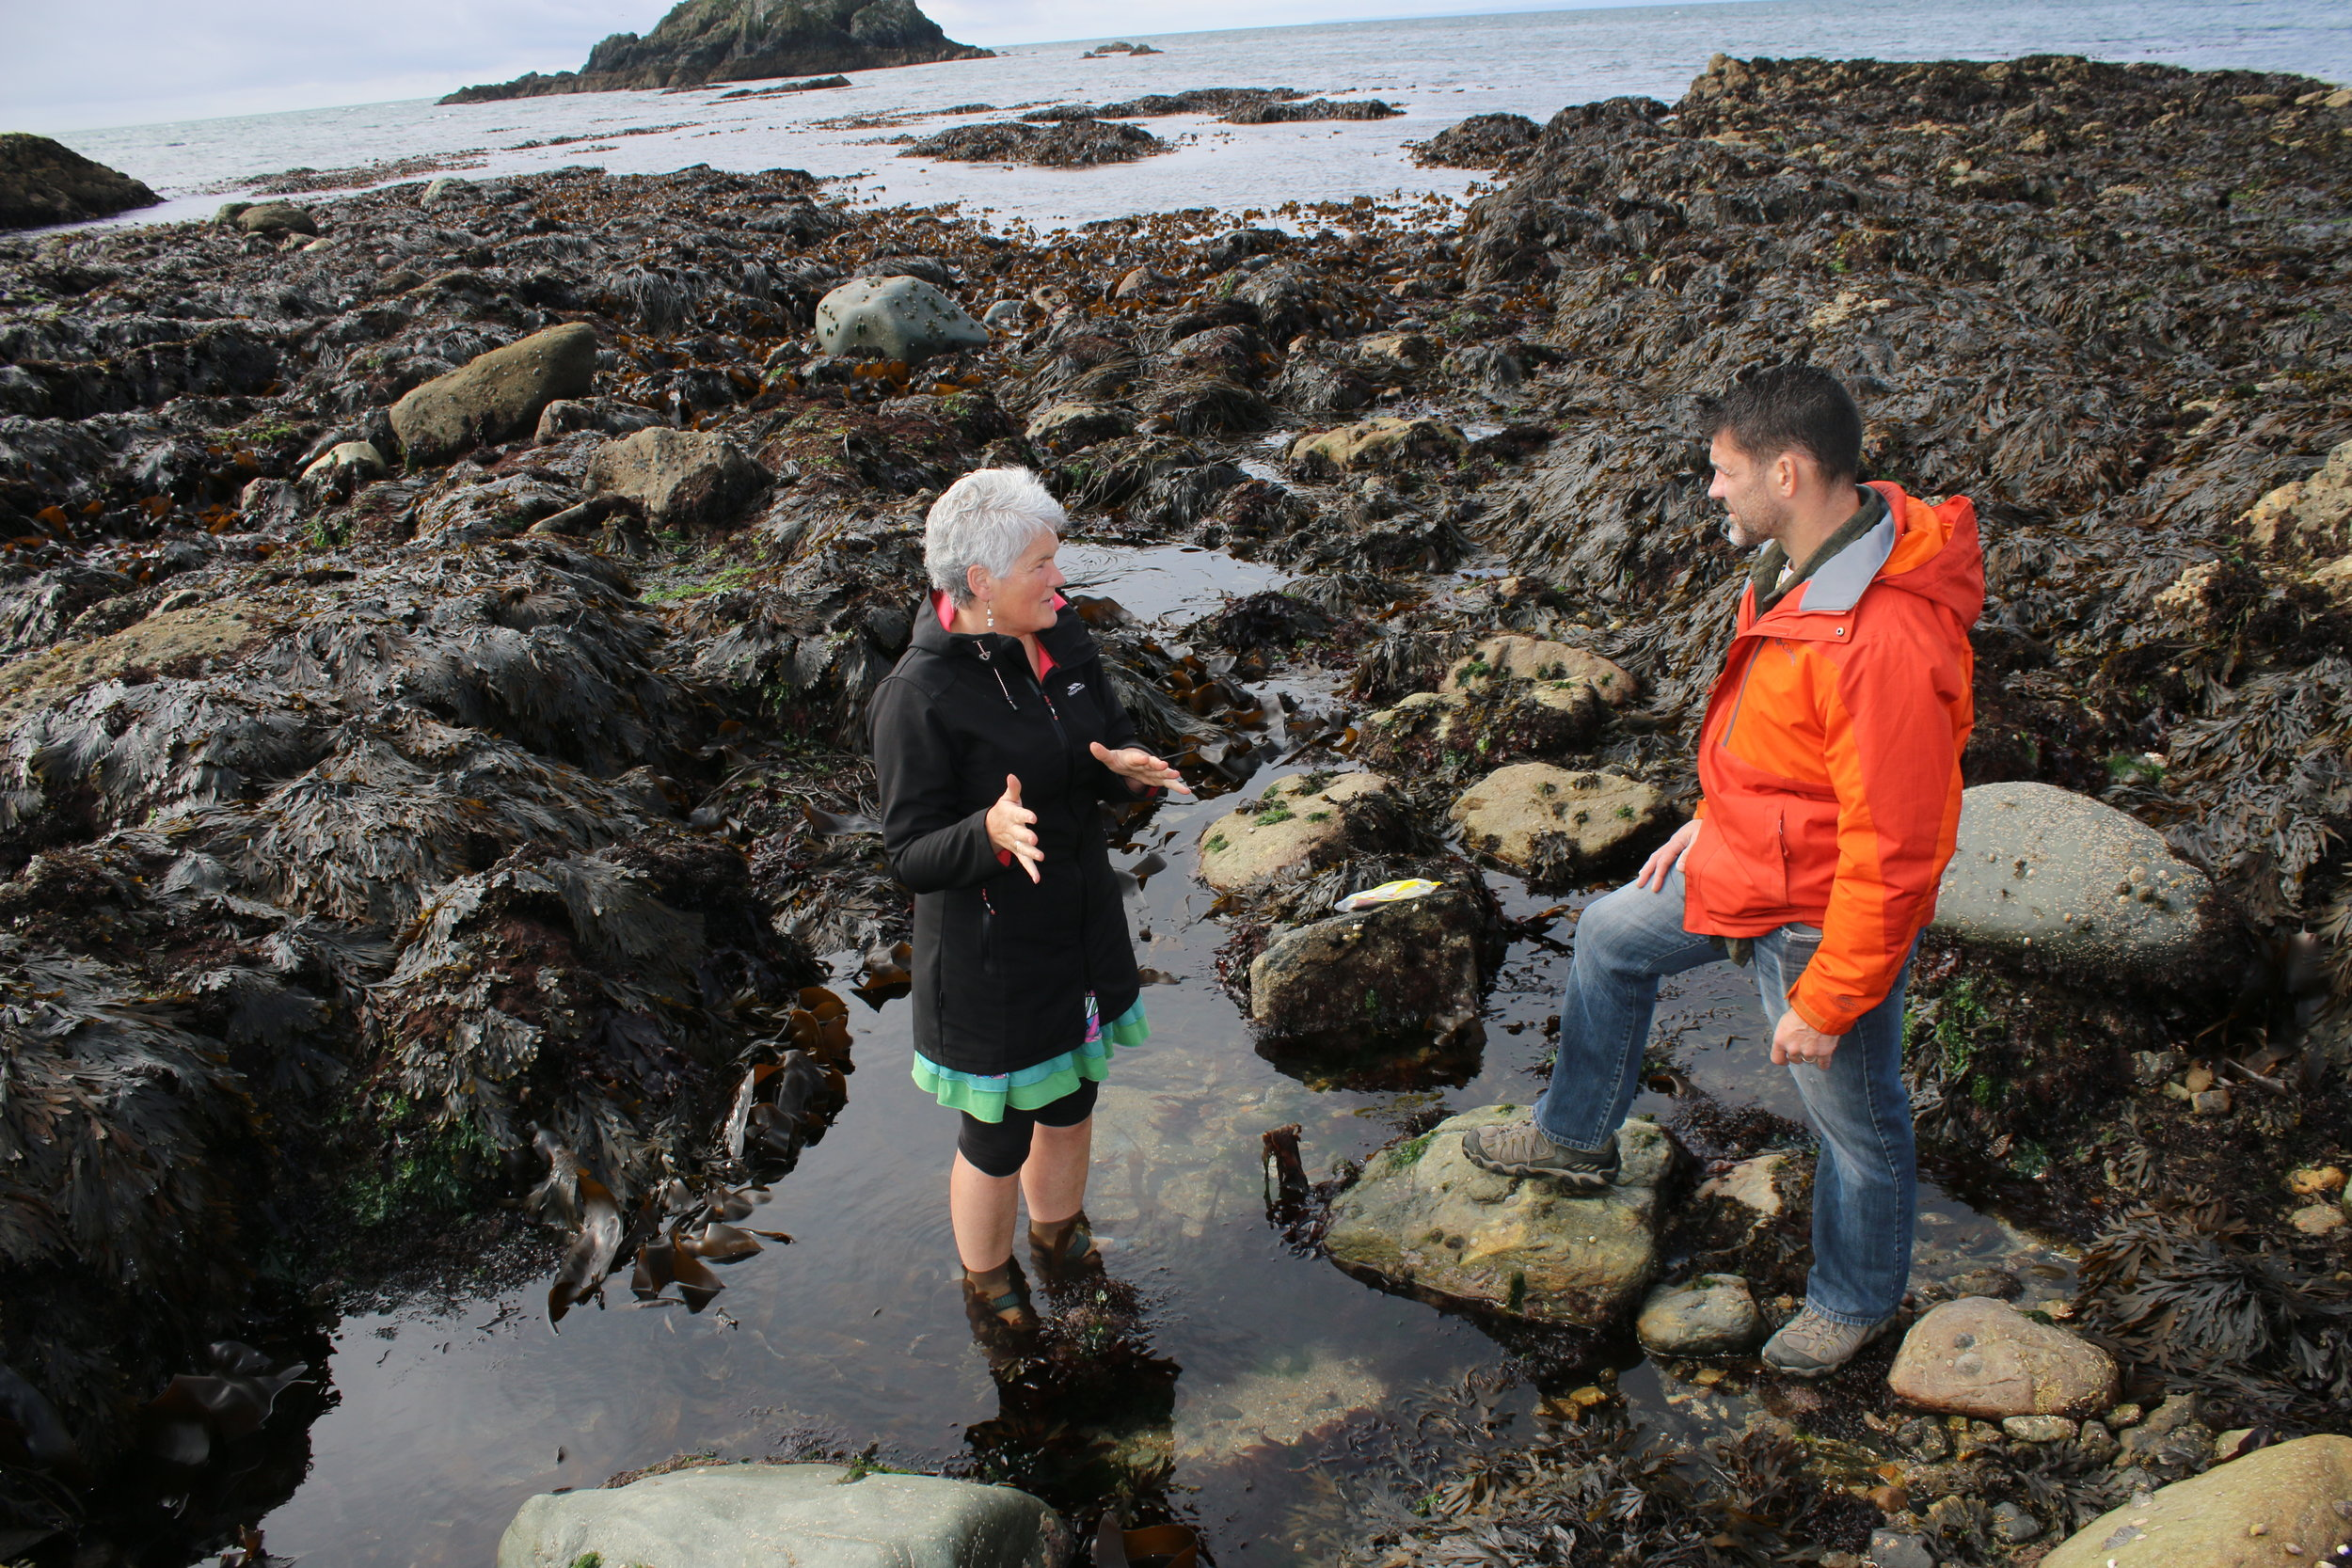 Marie & Bill discussing sea lettuce